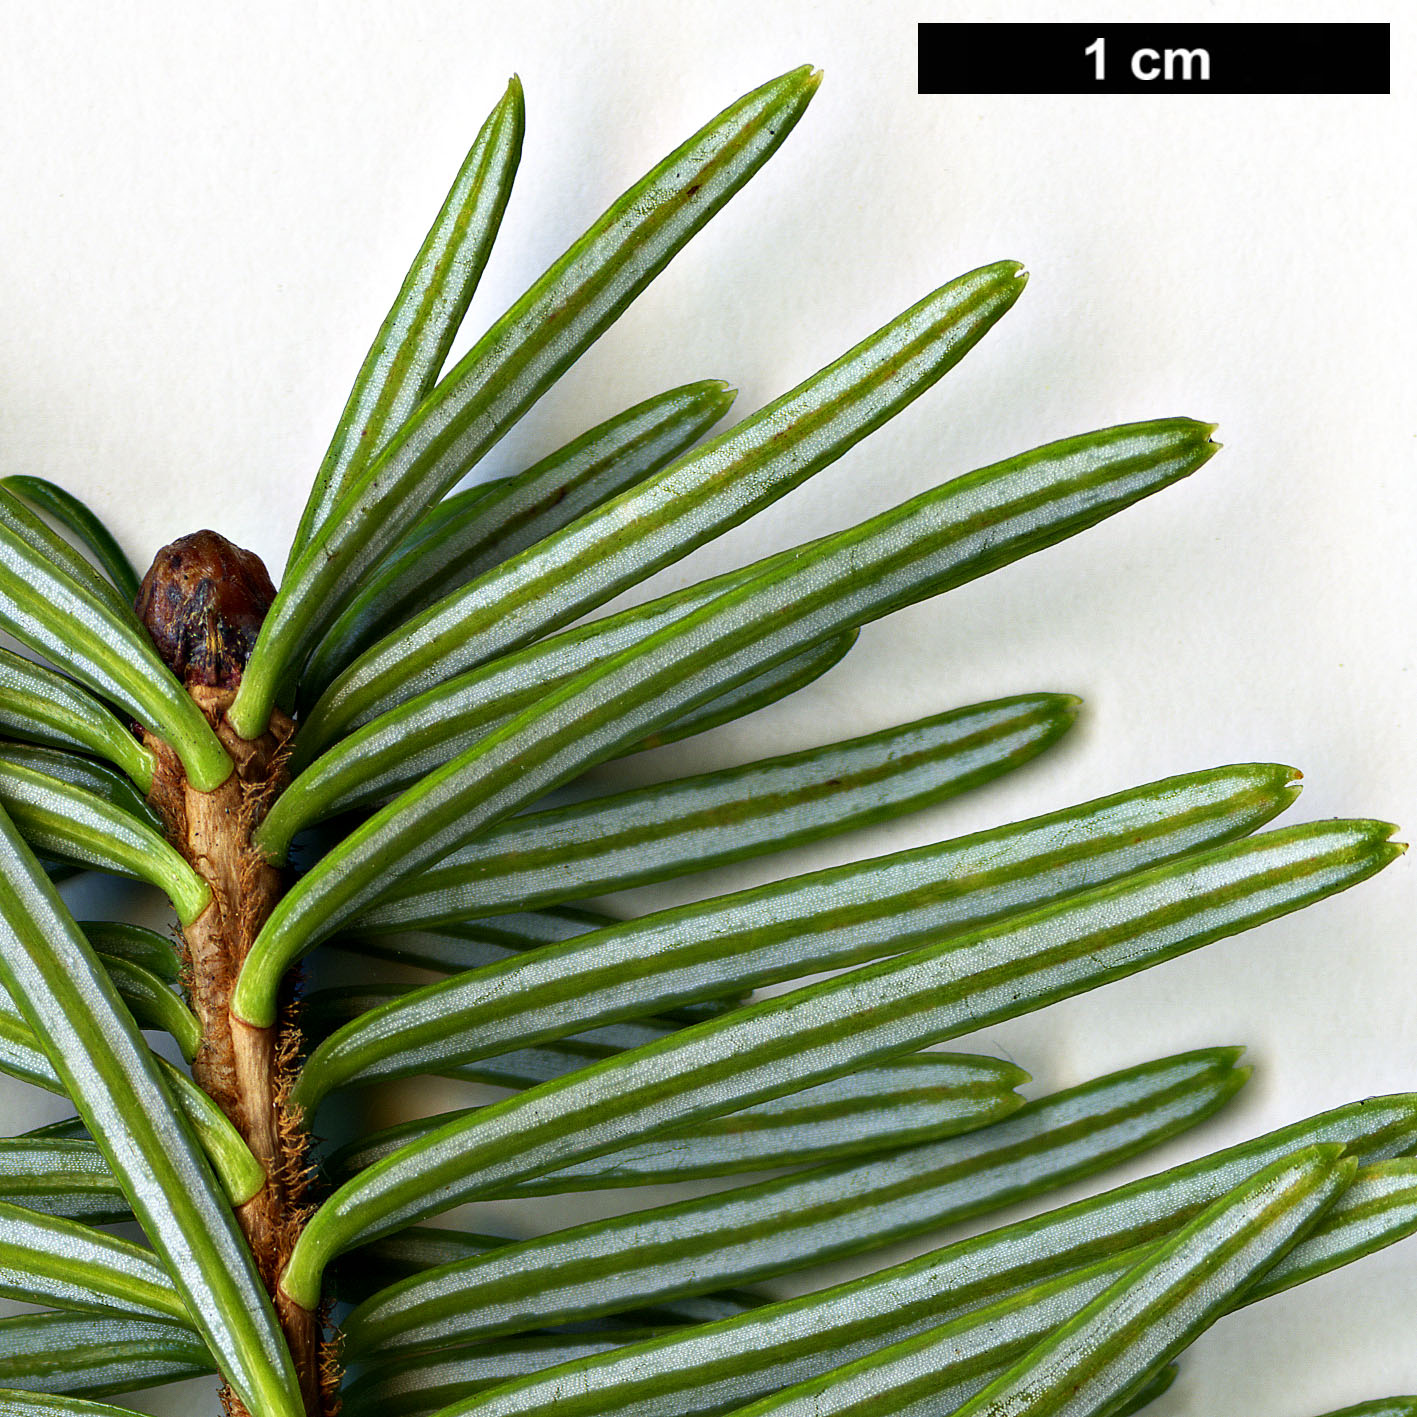 High resolution image: Family: Pinaceae - Genus: Abies - Taxon: spectabilis